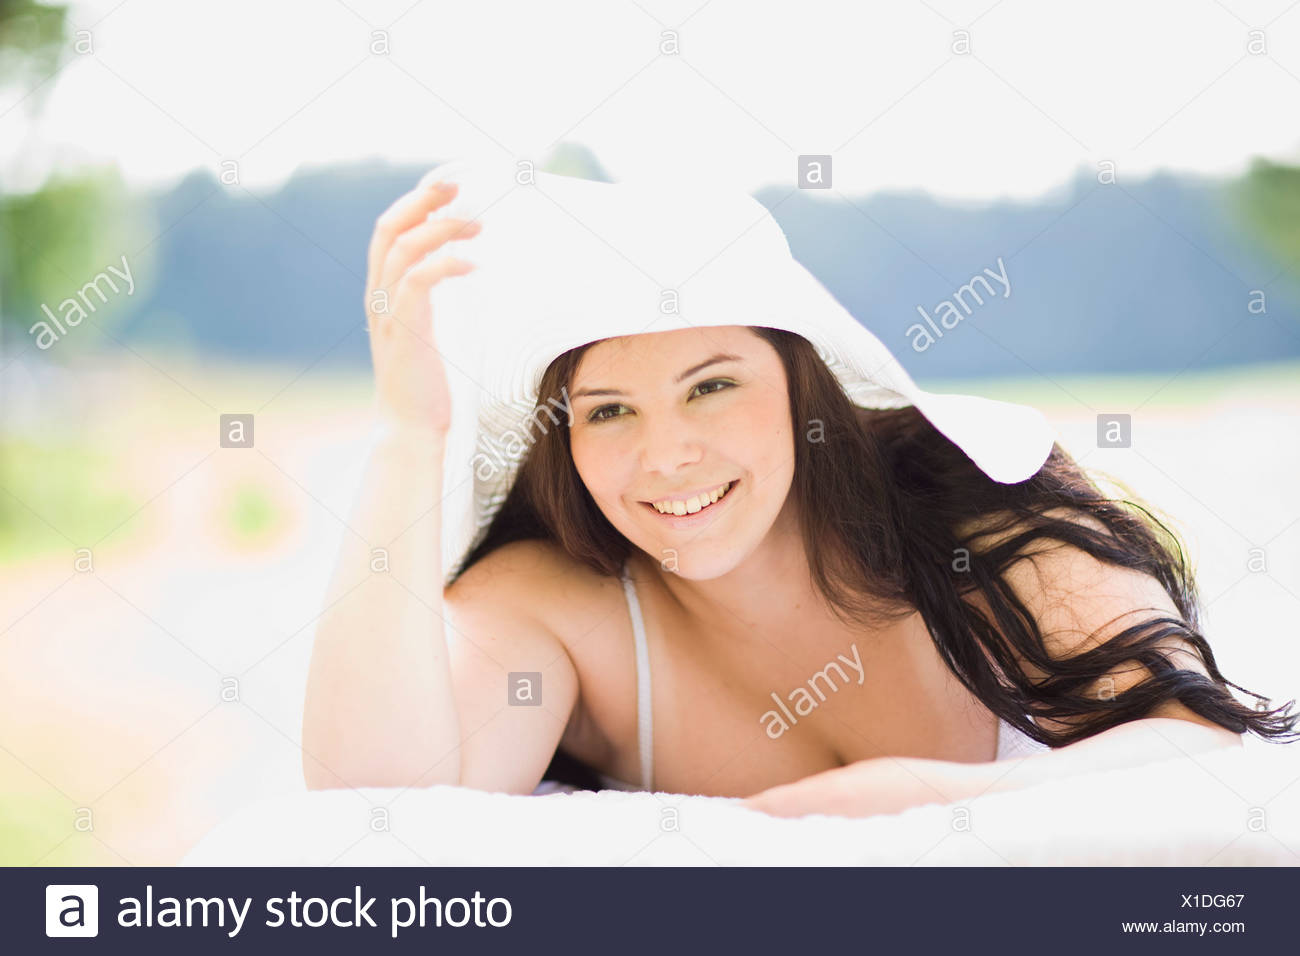 young plump girl lying on a sun lounger - Stock Image